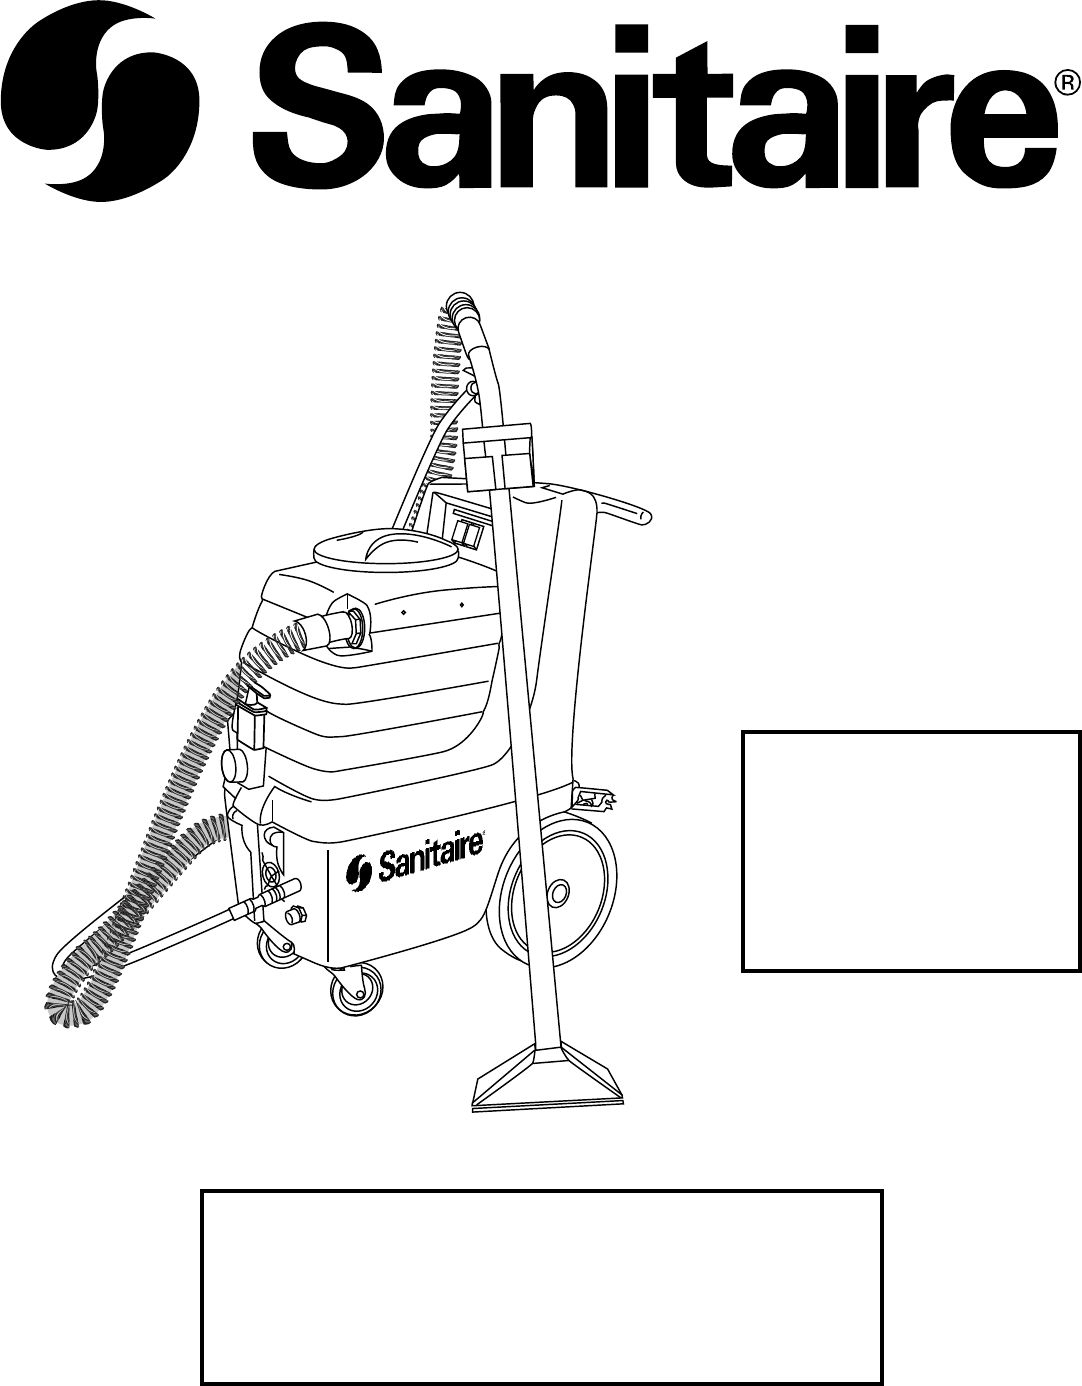 sanitaire carpet cleaner user manual